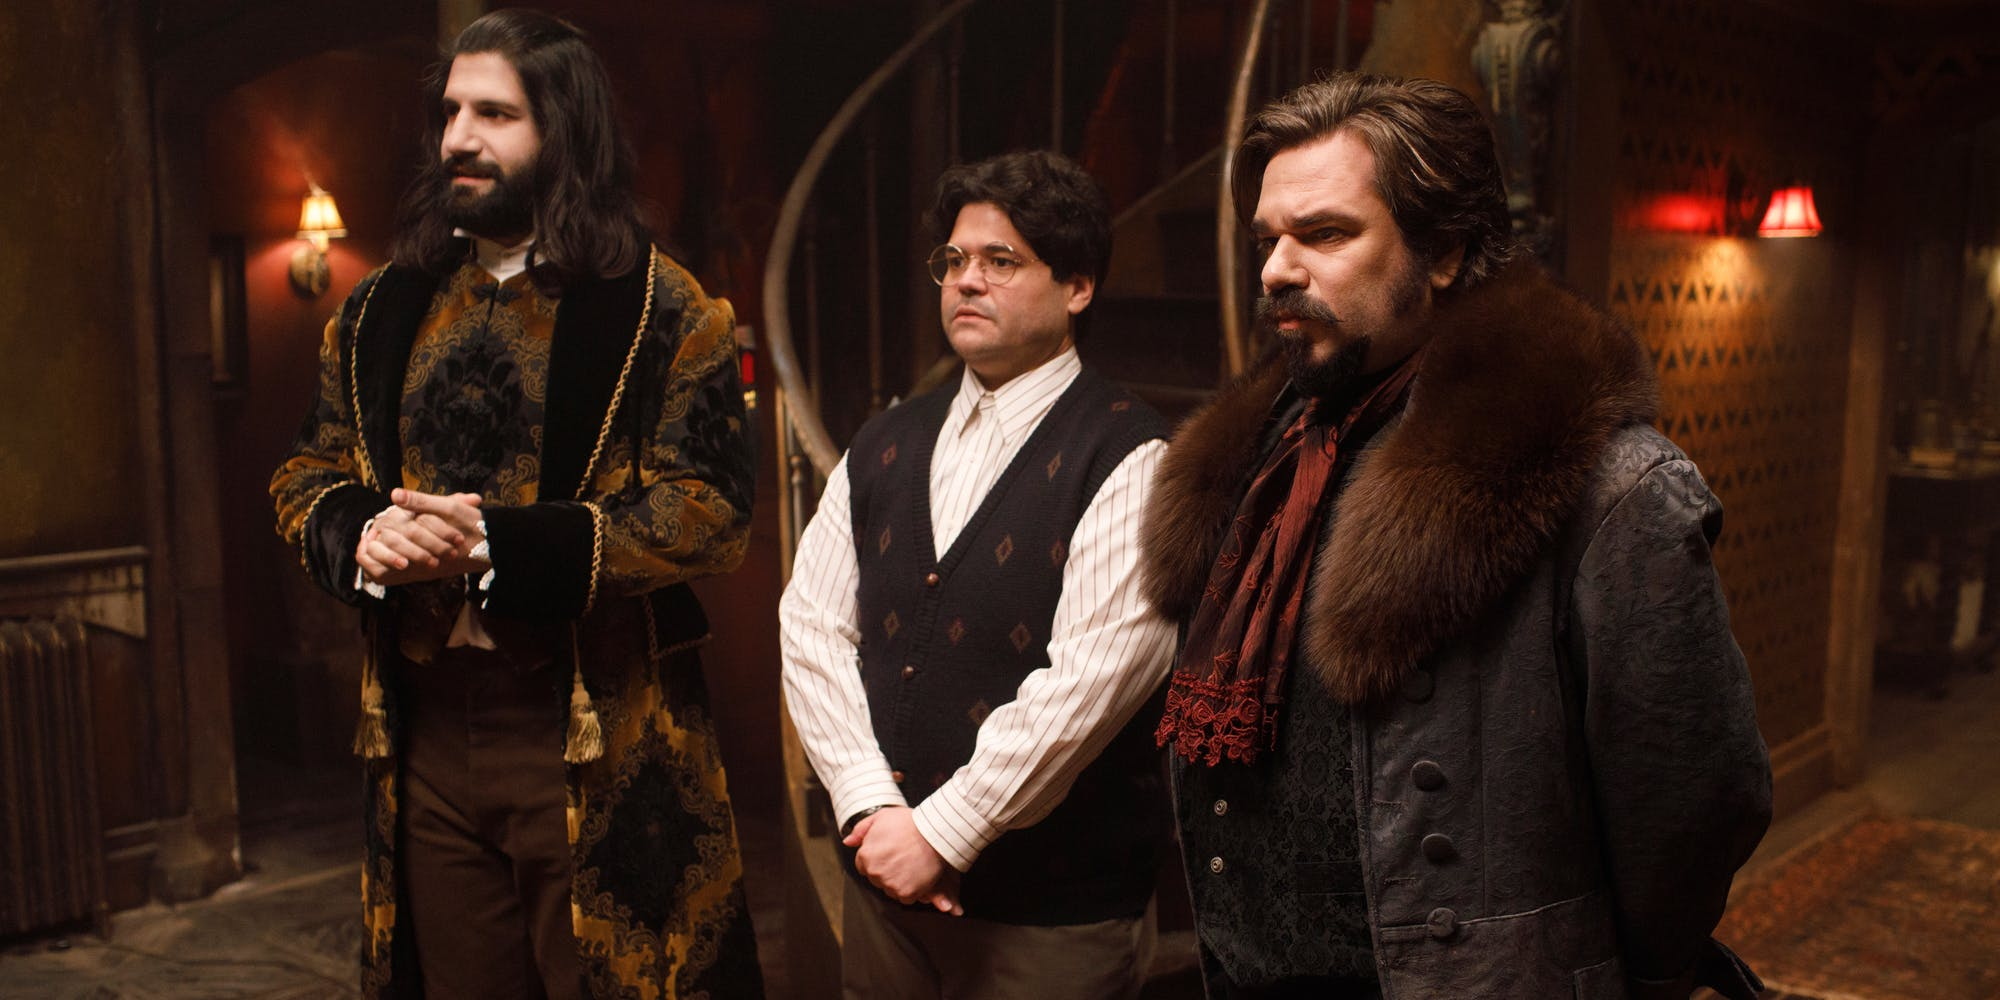 WHAT WE DO IN THE SHADOWS'UN DİZİSİNDEN İLK UZUN FRAGMAN